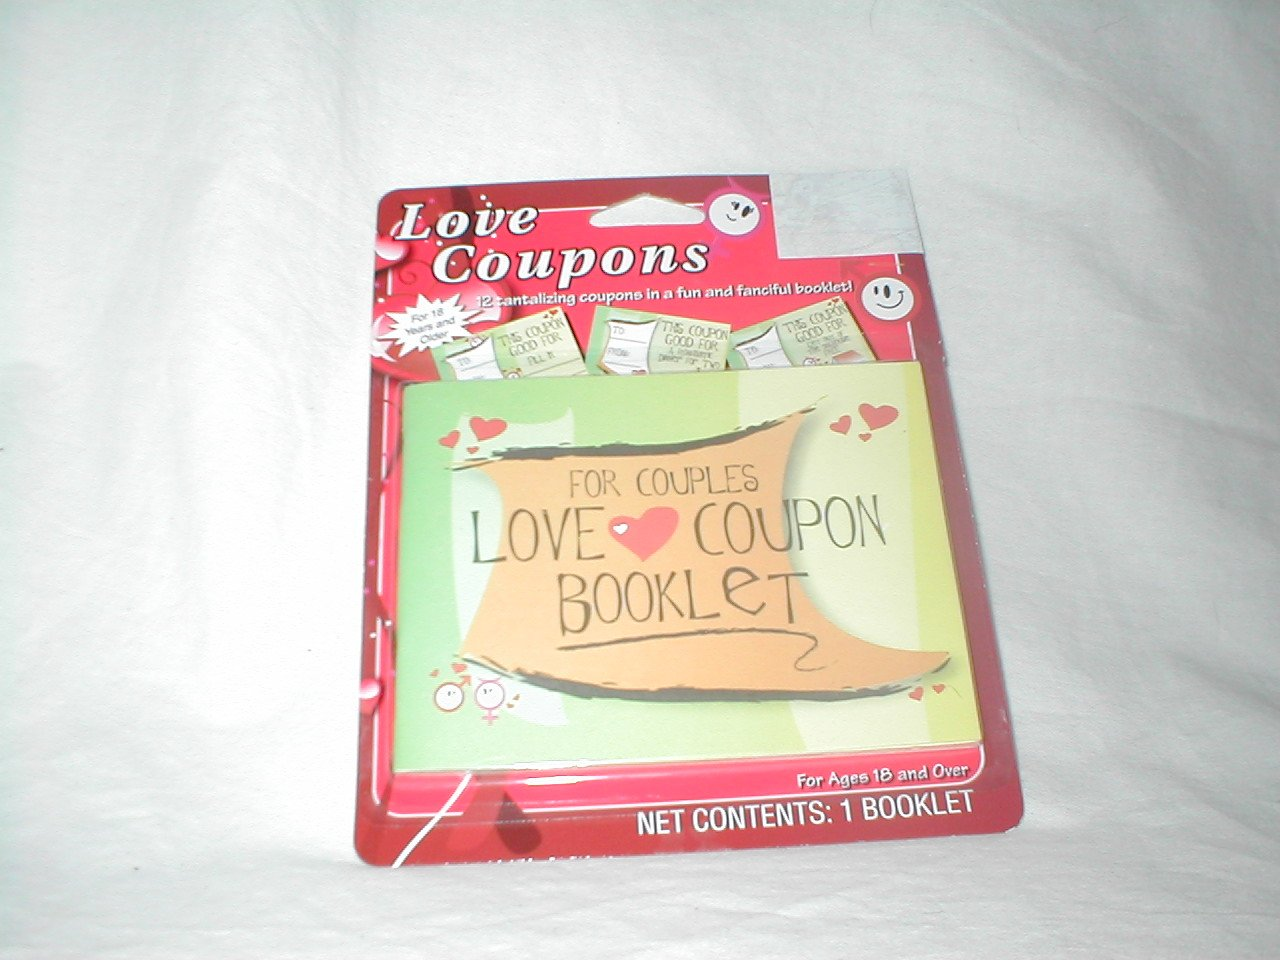 Dinner Love Coupon Book 12 Tempting Coupons for a Massage Dancing Movies and More!